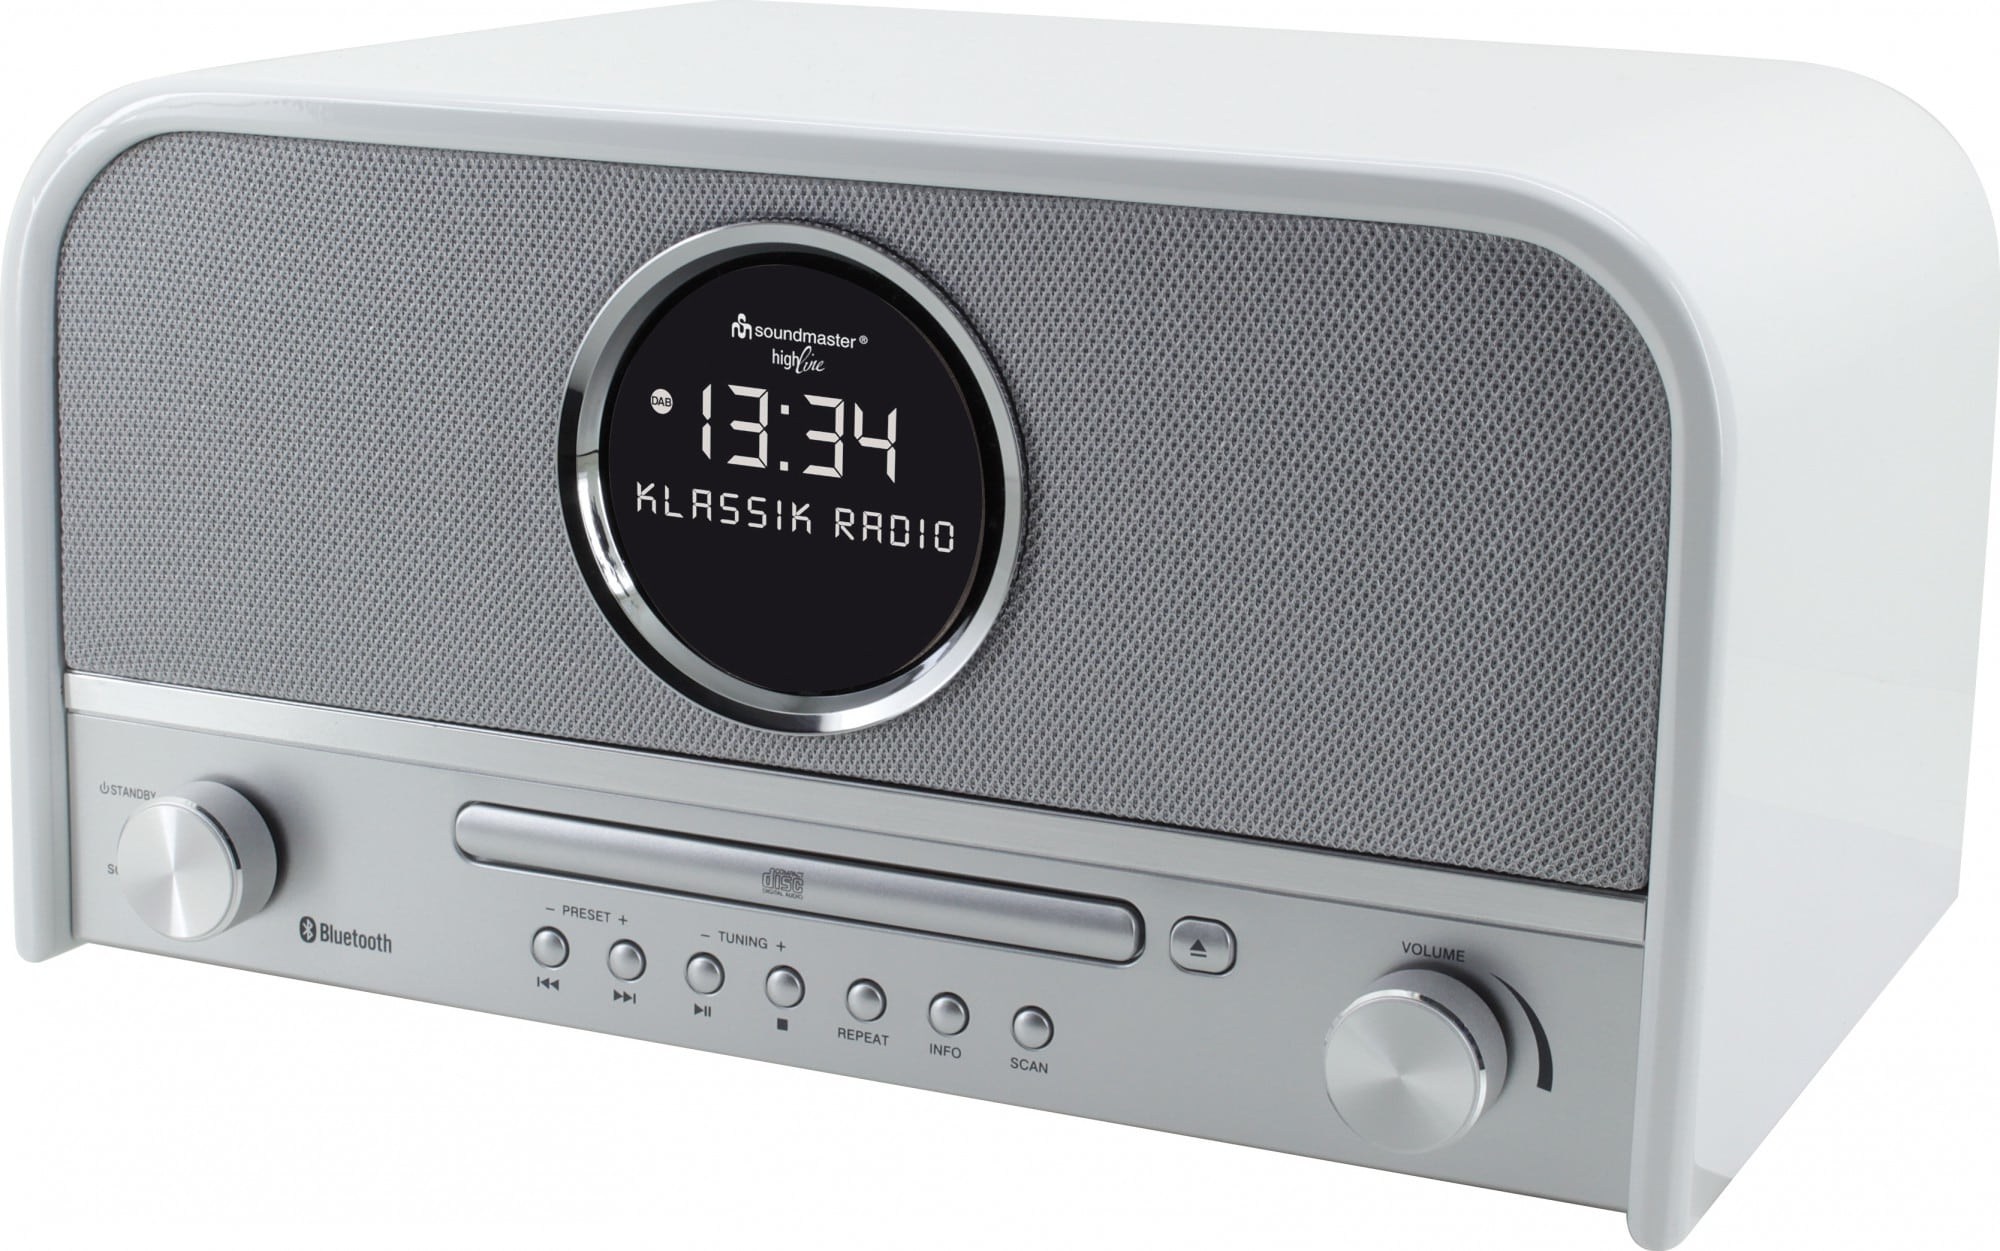 Soundmaster NR850WE UKW/DAB+ Radio LCD-Uhr Bluetooth USB CD für 199,00 Euro